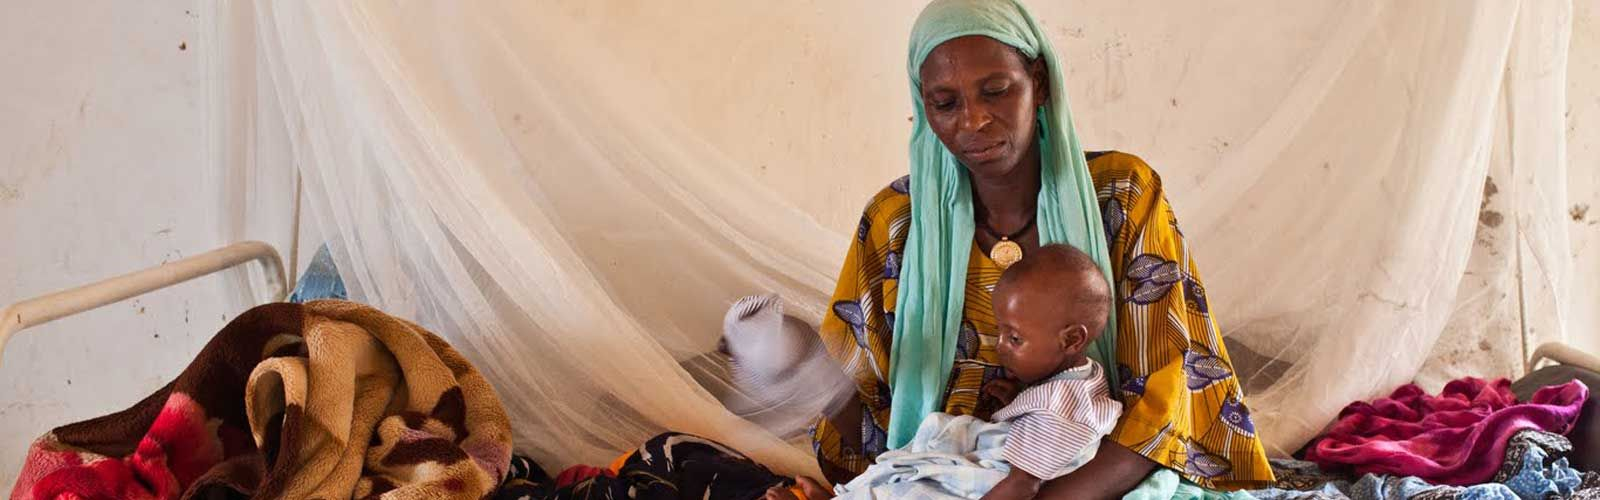 A woman and child in Chad during the Sahel drought of 2012